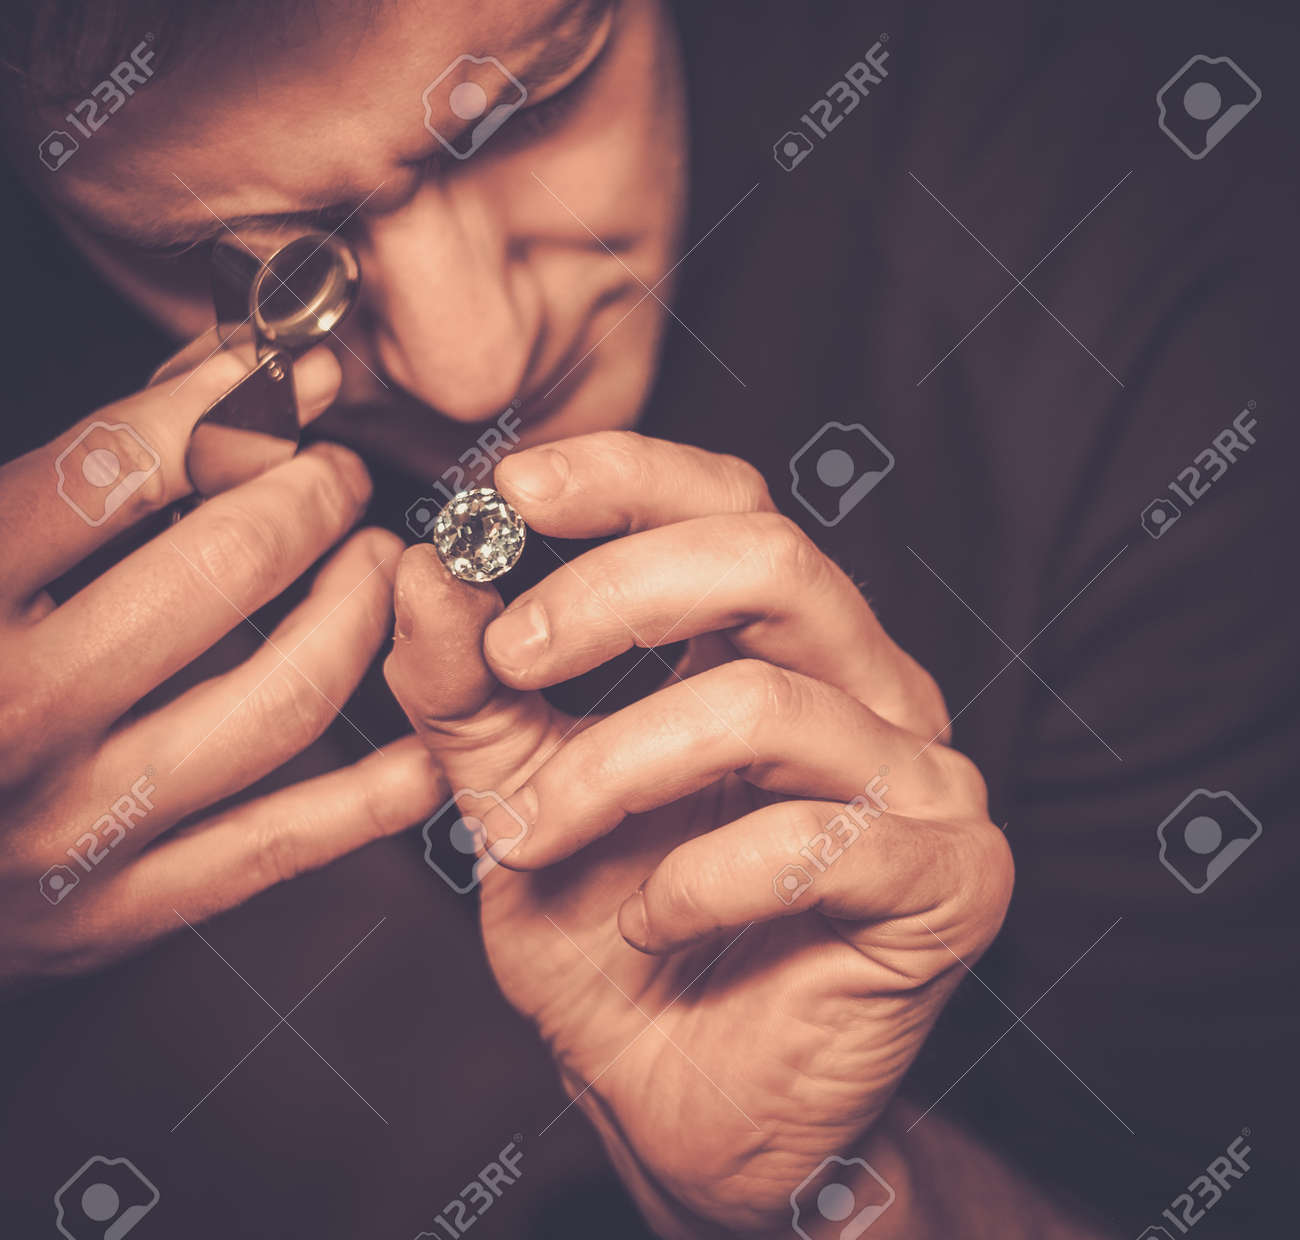 Portrait of a jeweler during the evaluation of jewels. Stock Photo - 50661965